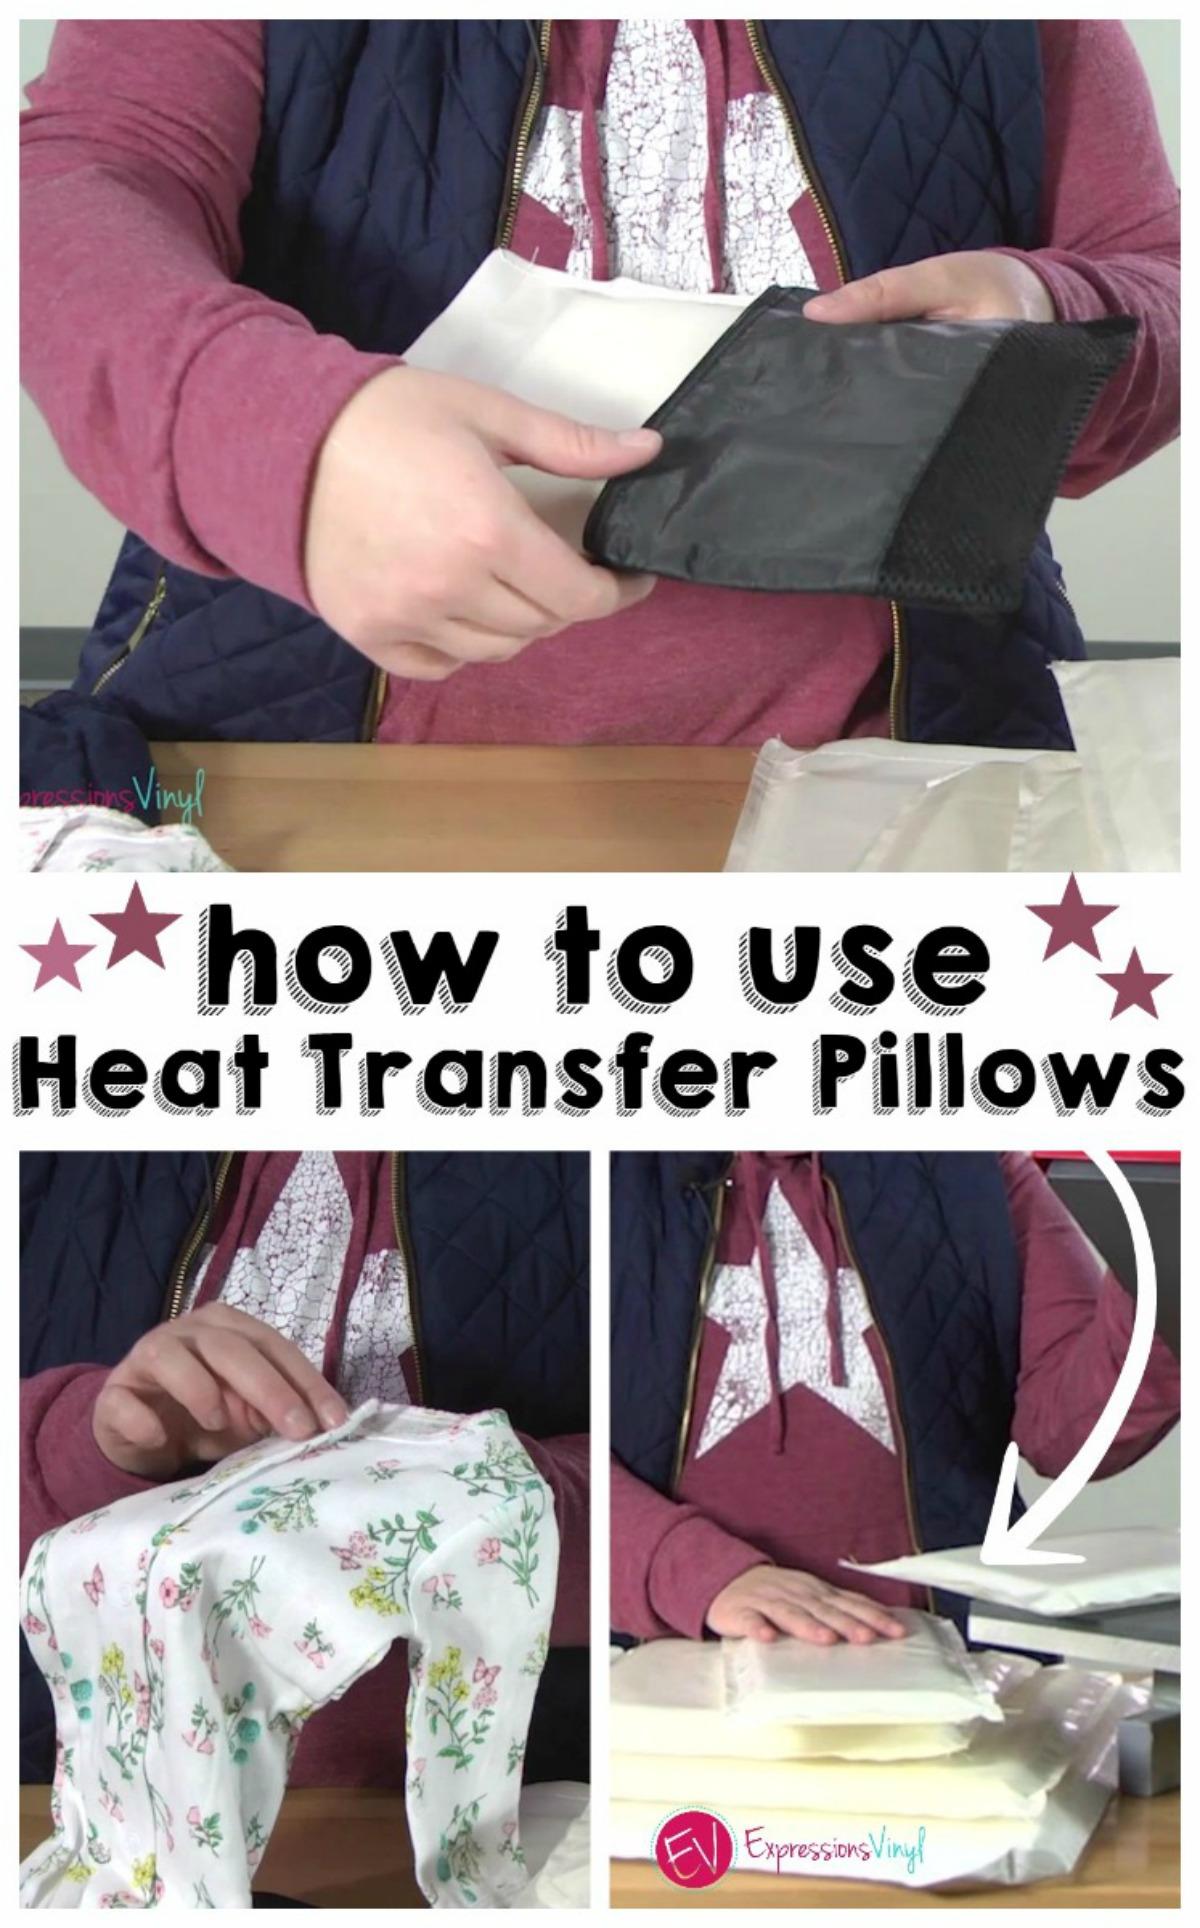 How To Use Heat Transfer Pillow Correctly Expressions Vinyl